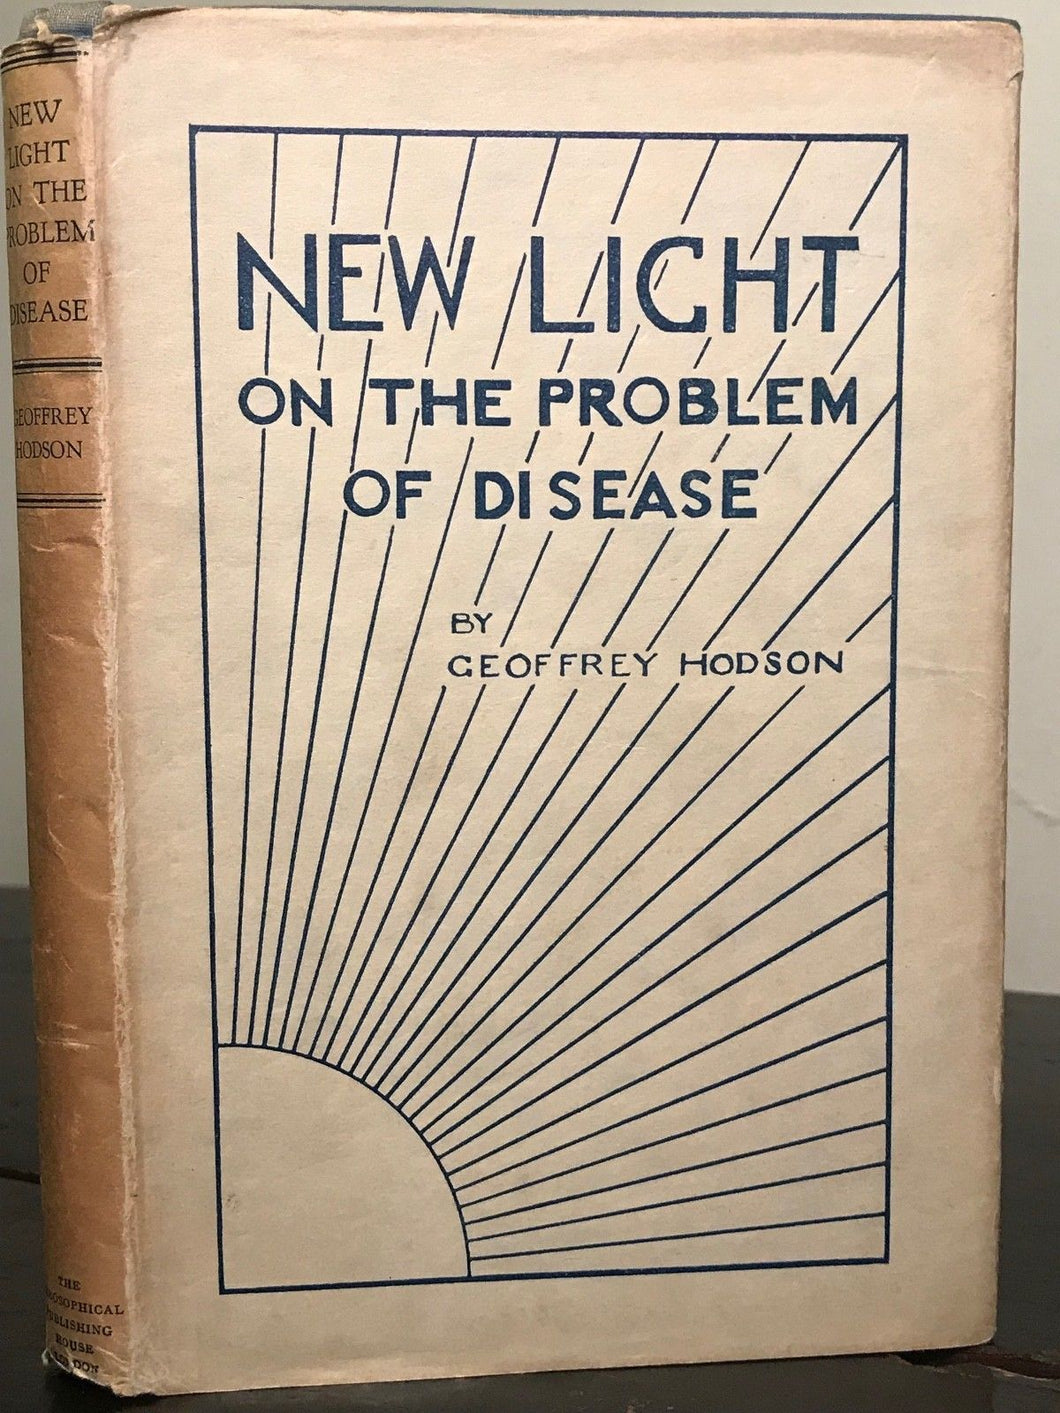 GEOFFREY HODSON - NEW LIGHT ON THE PROBLEM OF DISEASE - 1st/1st, 1930